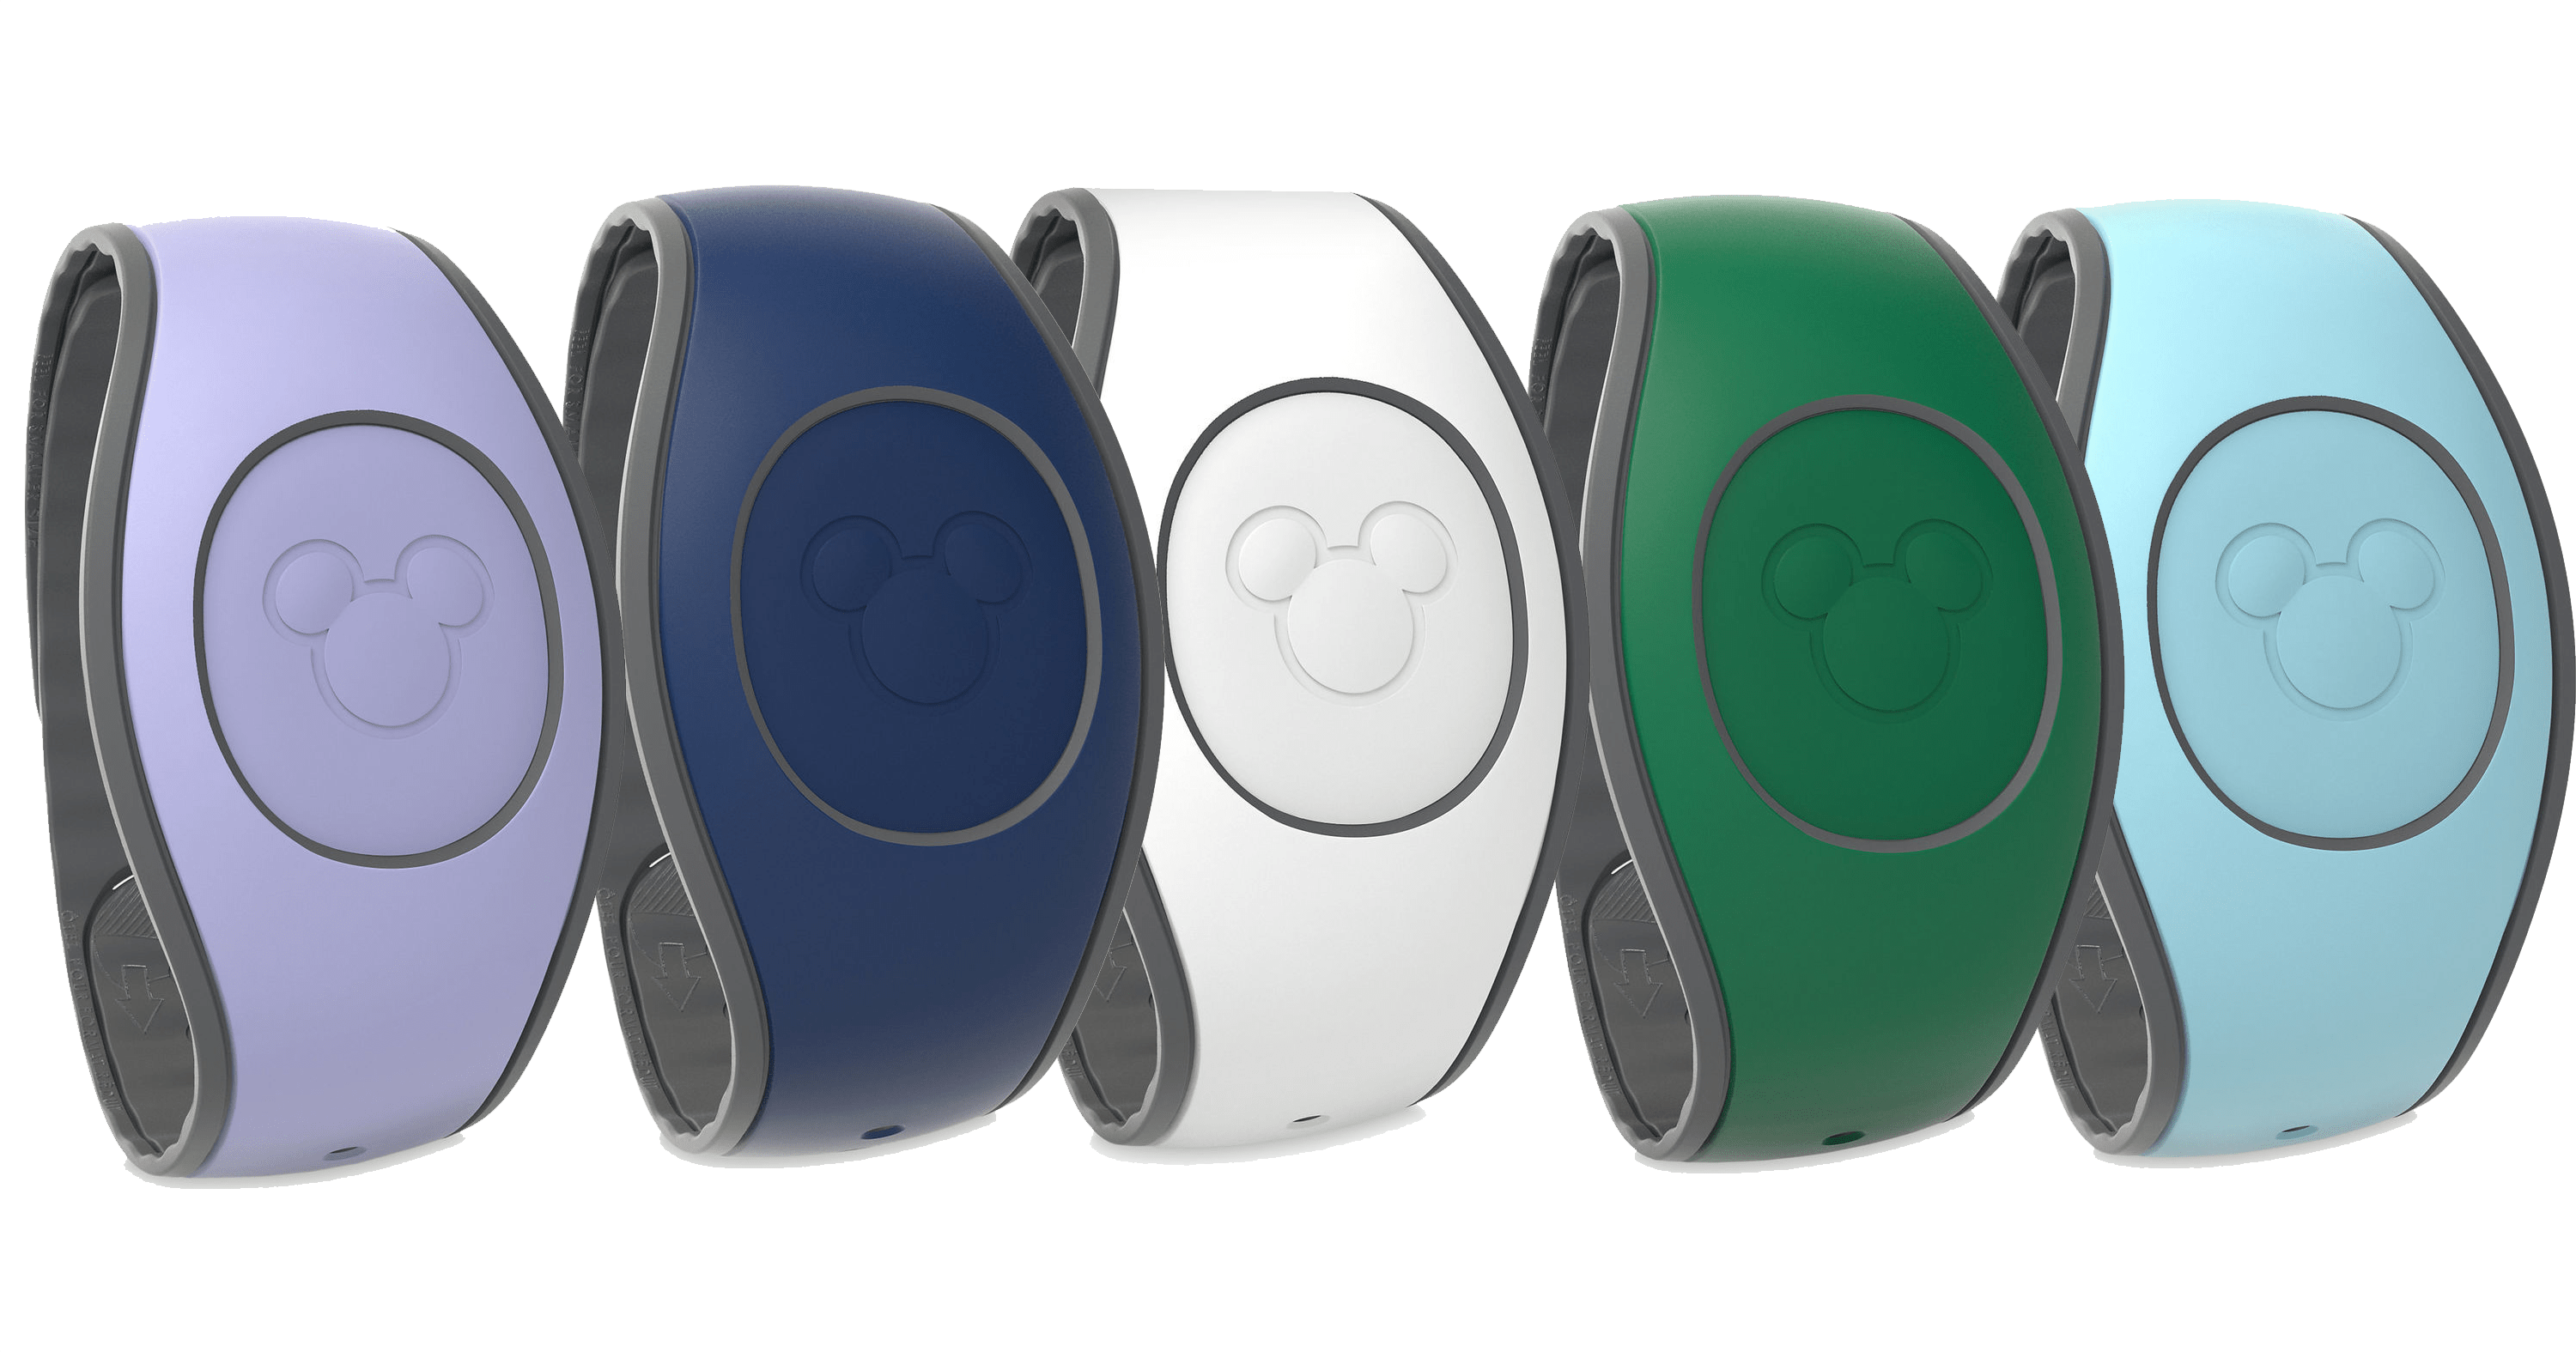 Magicbands Png - Five New MagicBand Colors Have Arrived